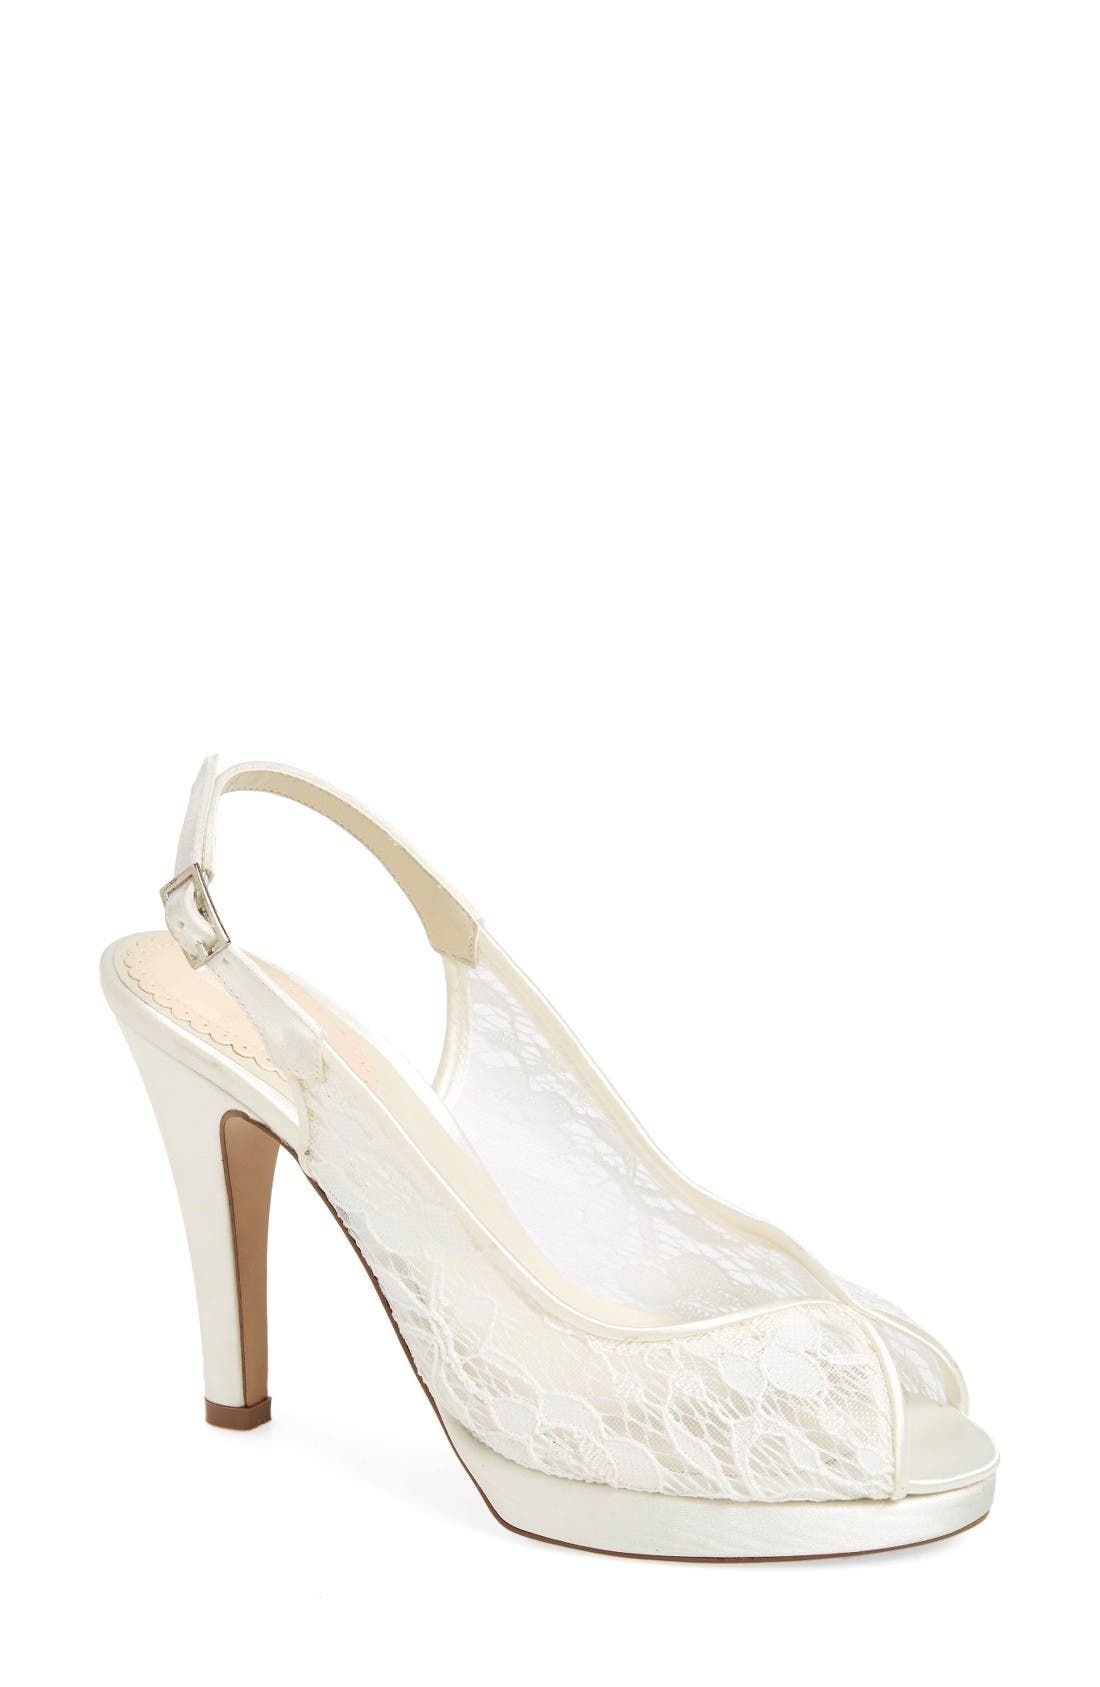 Affinity Lace Open Toe Pump,                         Main,                         color, Ivory